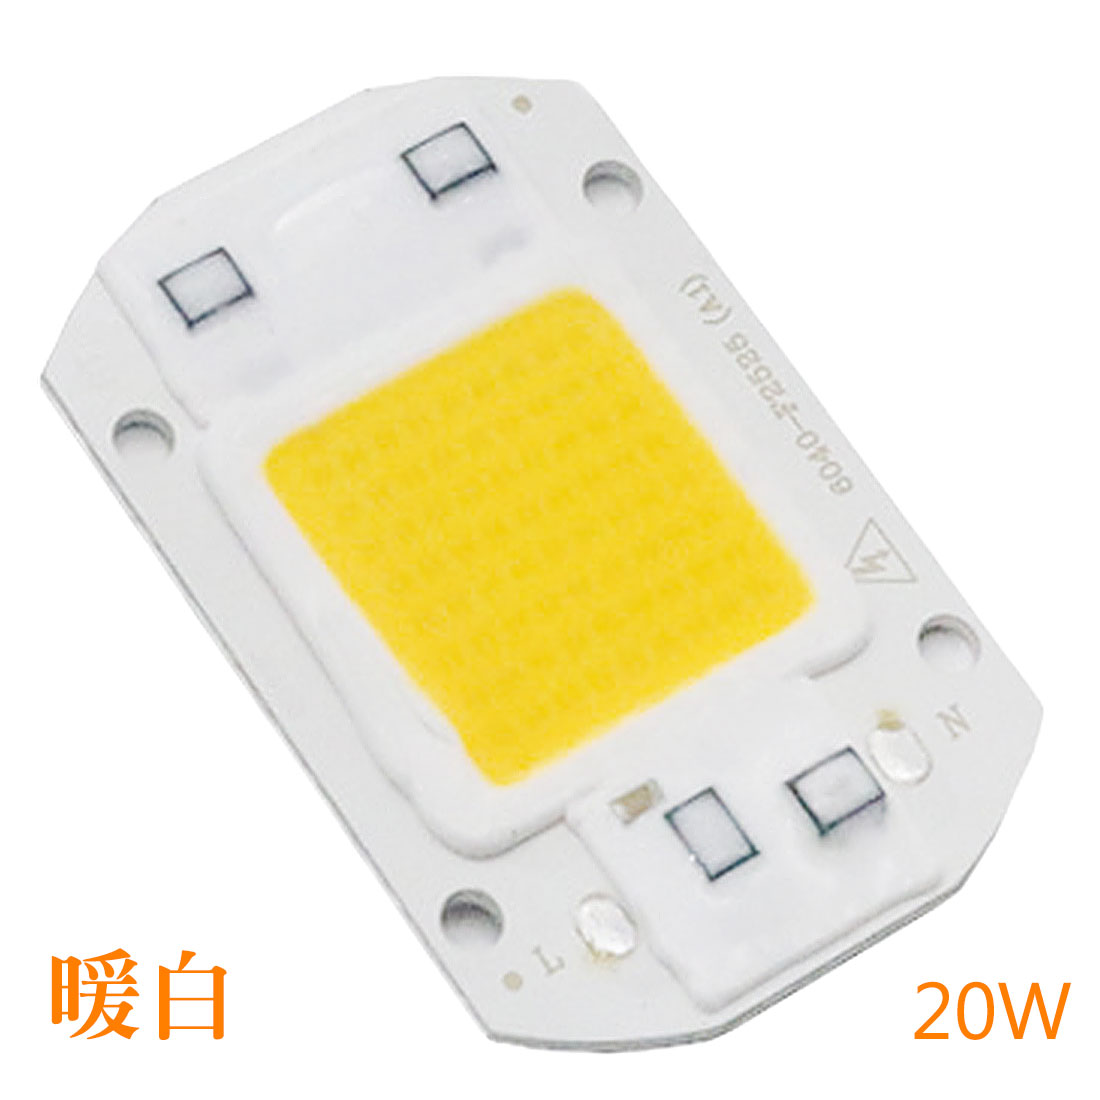 Aggressive 50w Led Flood Light Full Wattage 220v Led Diode Searchlight Projector Floodlight Waterproof Outdoor Street Wall Lighting Lights & Lighting Led Bulbs & Tubes